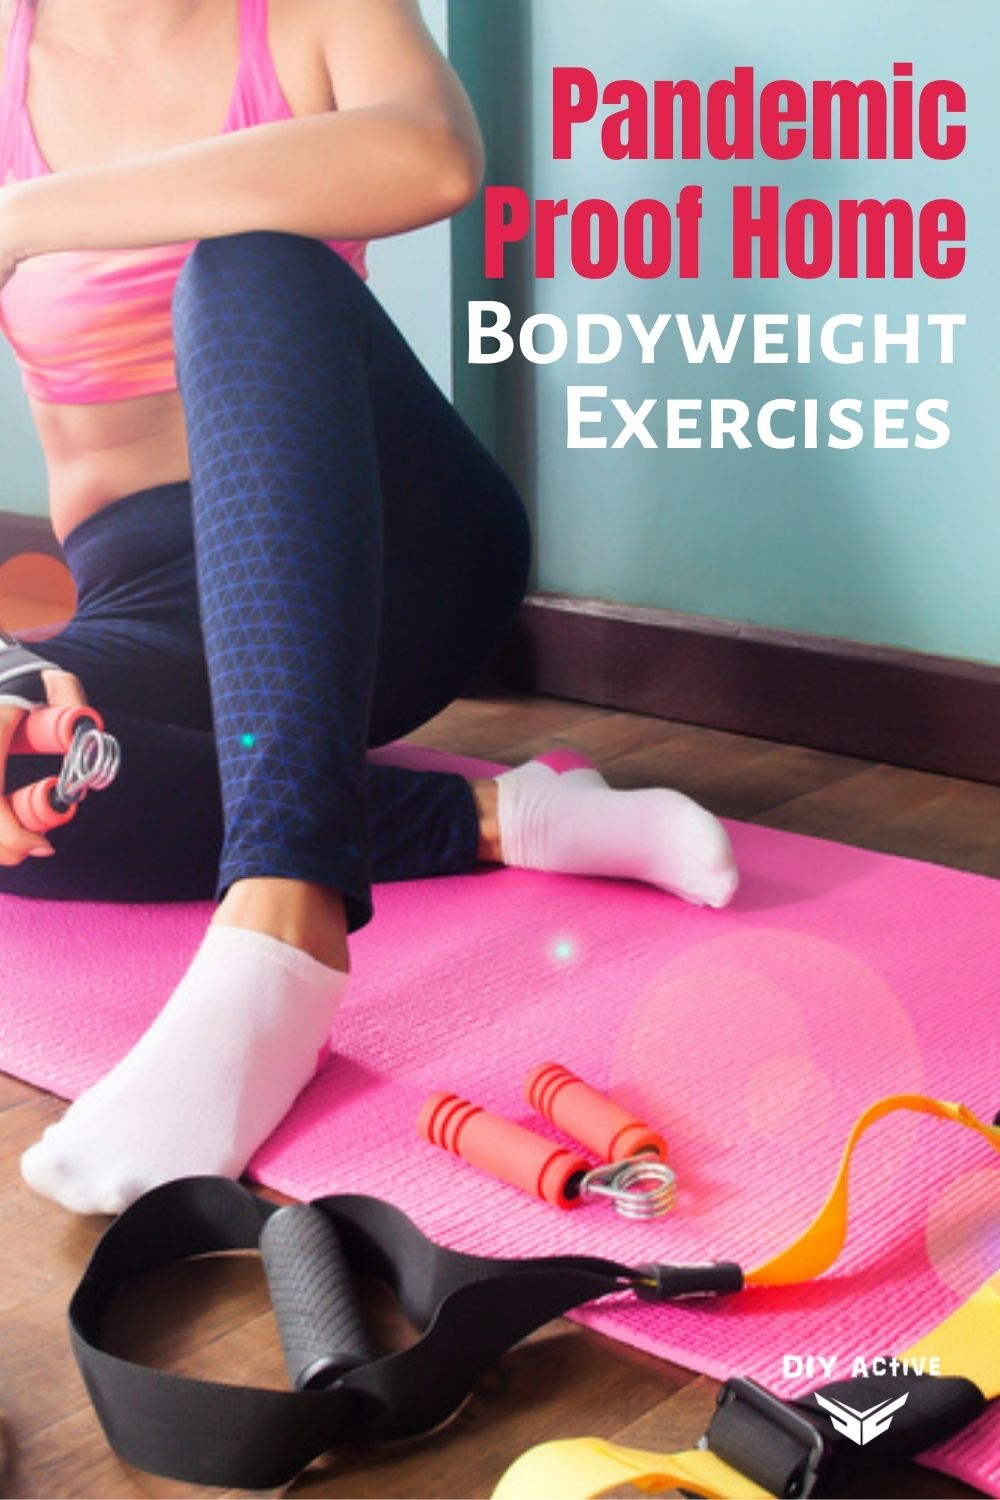 Great Bodyweight Exercises to Do During The Pandemic